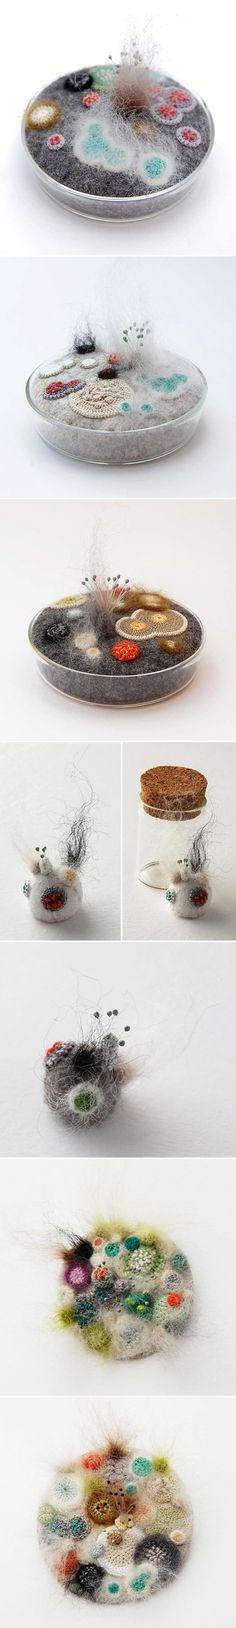 crocheted/embroidered mold, by elin thomas <3